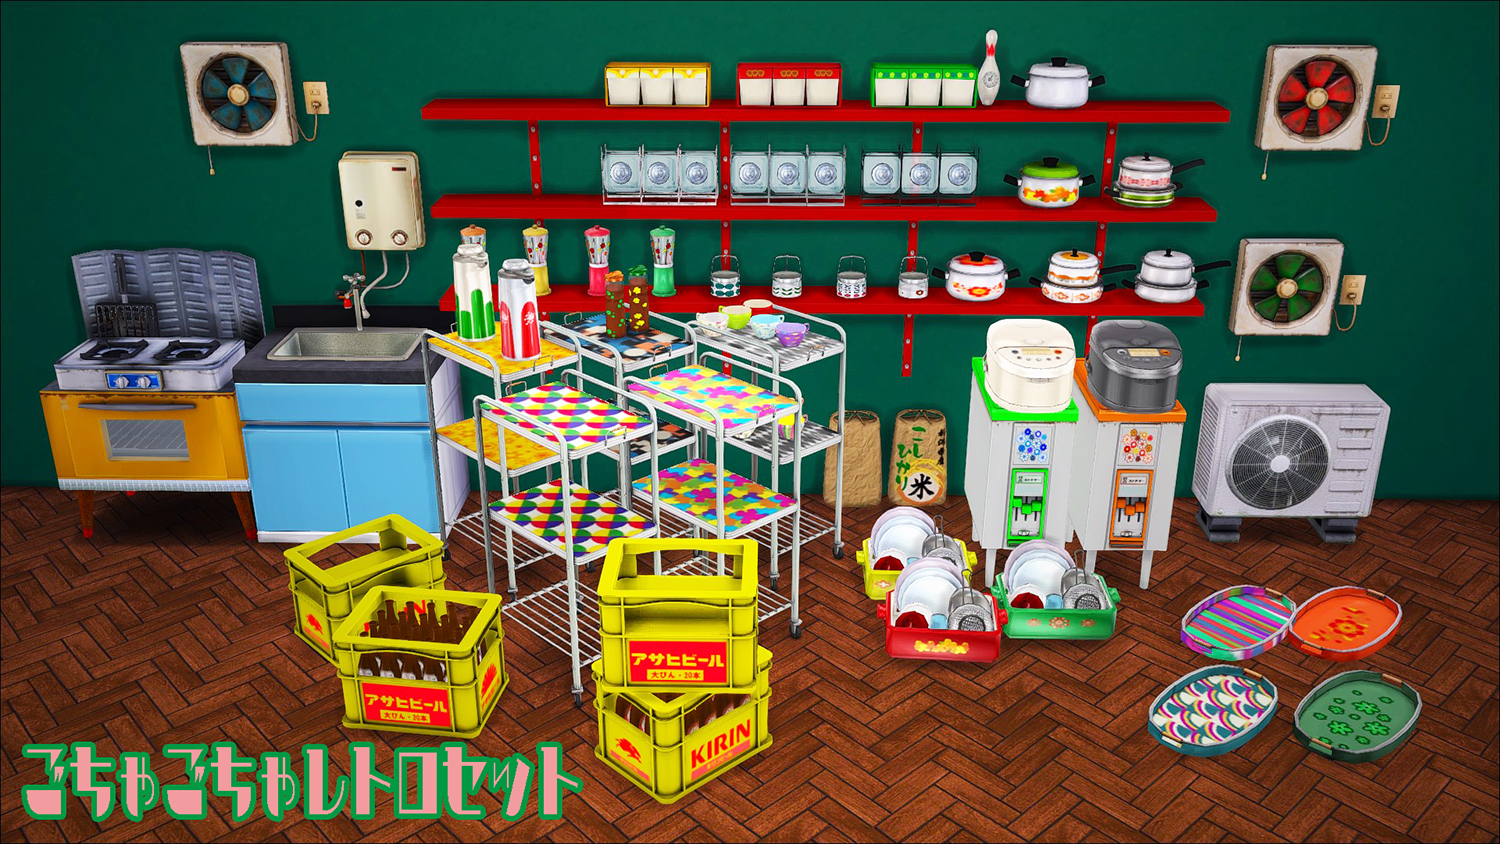 Baby Küchengeräte My Sims 4 Blog Retro Kitchen Appliances And Decor By Kimu412